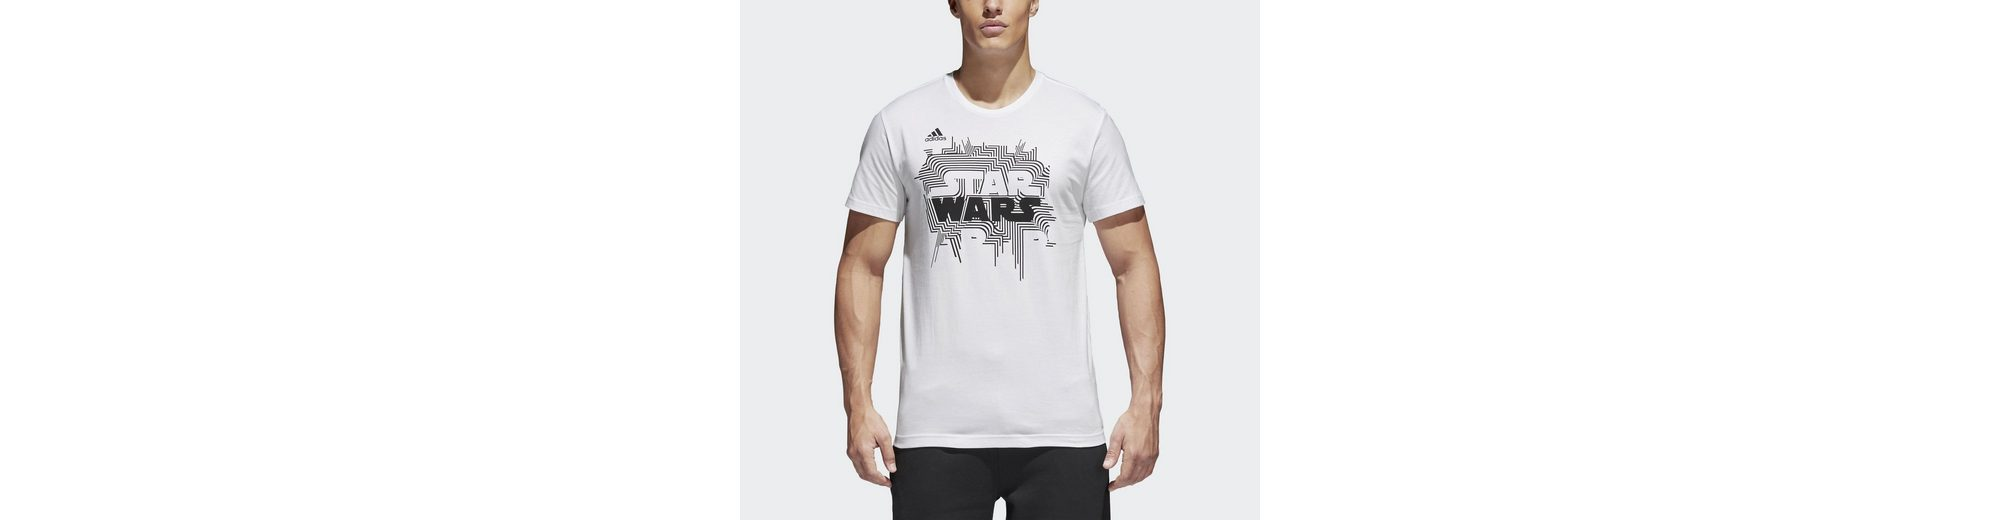 adidas Performance Sporttop Star Wars T-Shirt Geringster Preis fXweys9uV